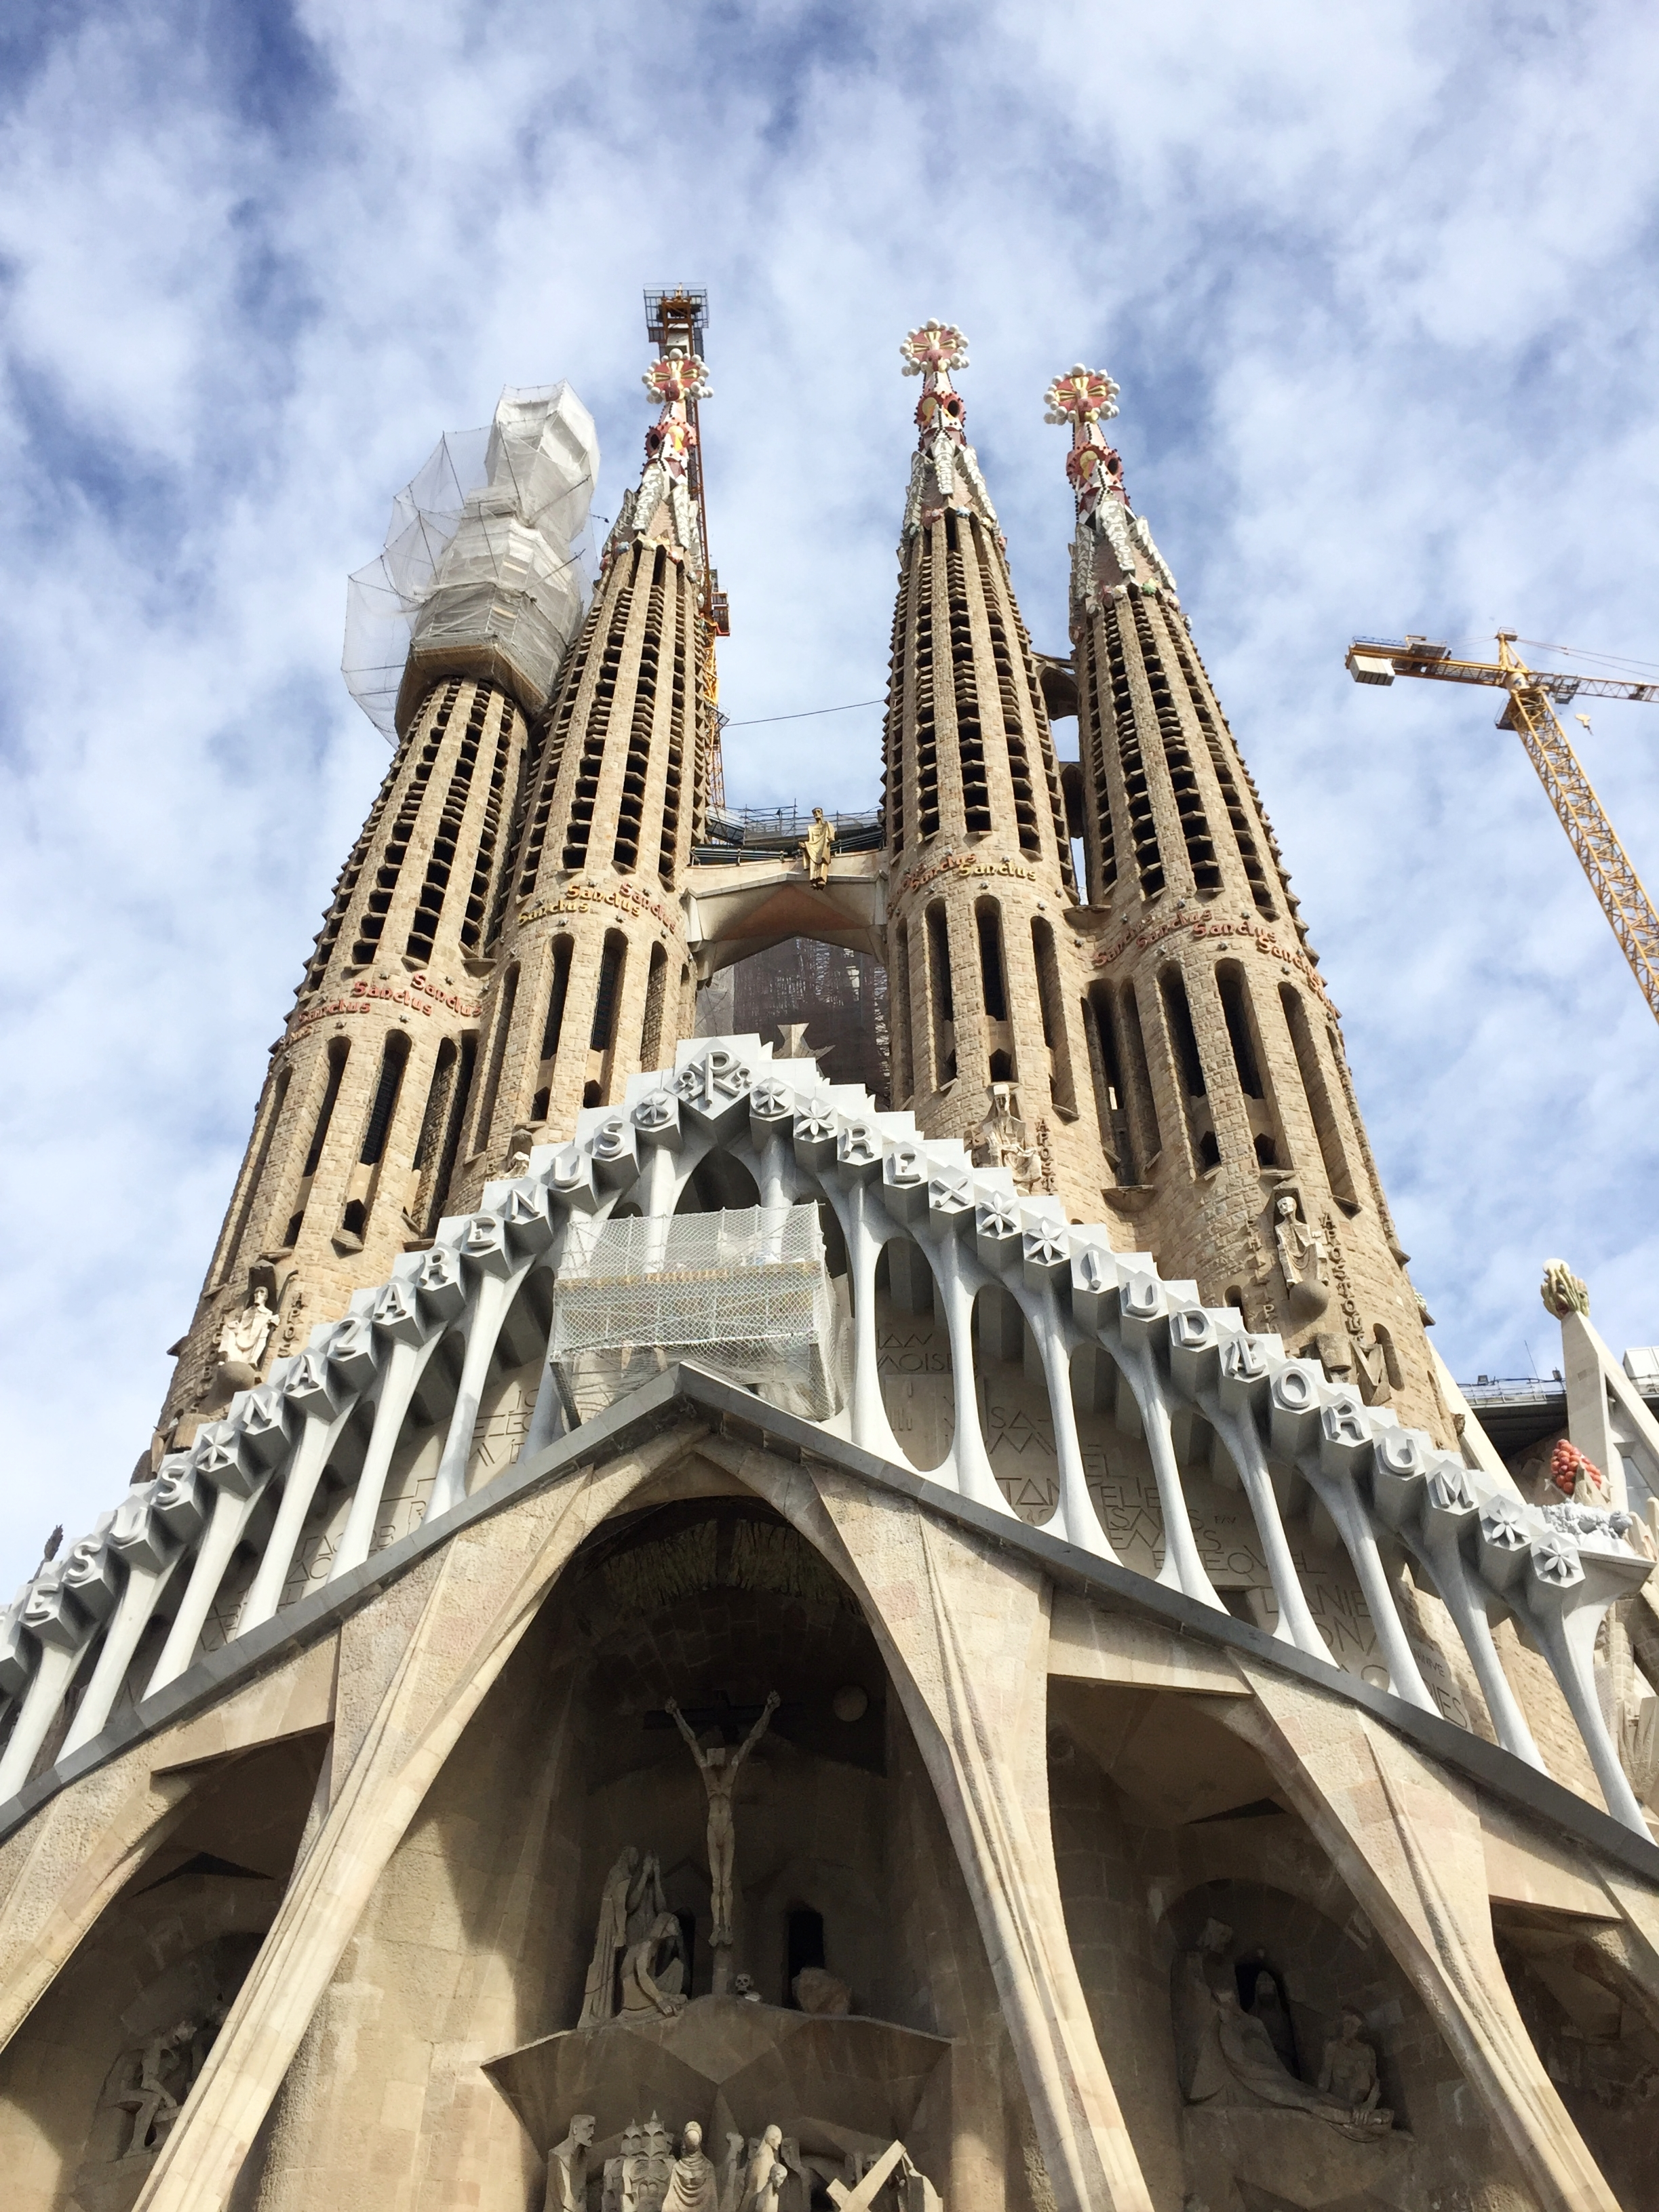 Barcelona travel guide on Her Favourite Food